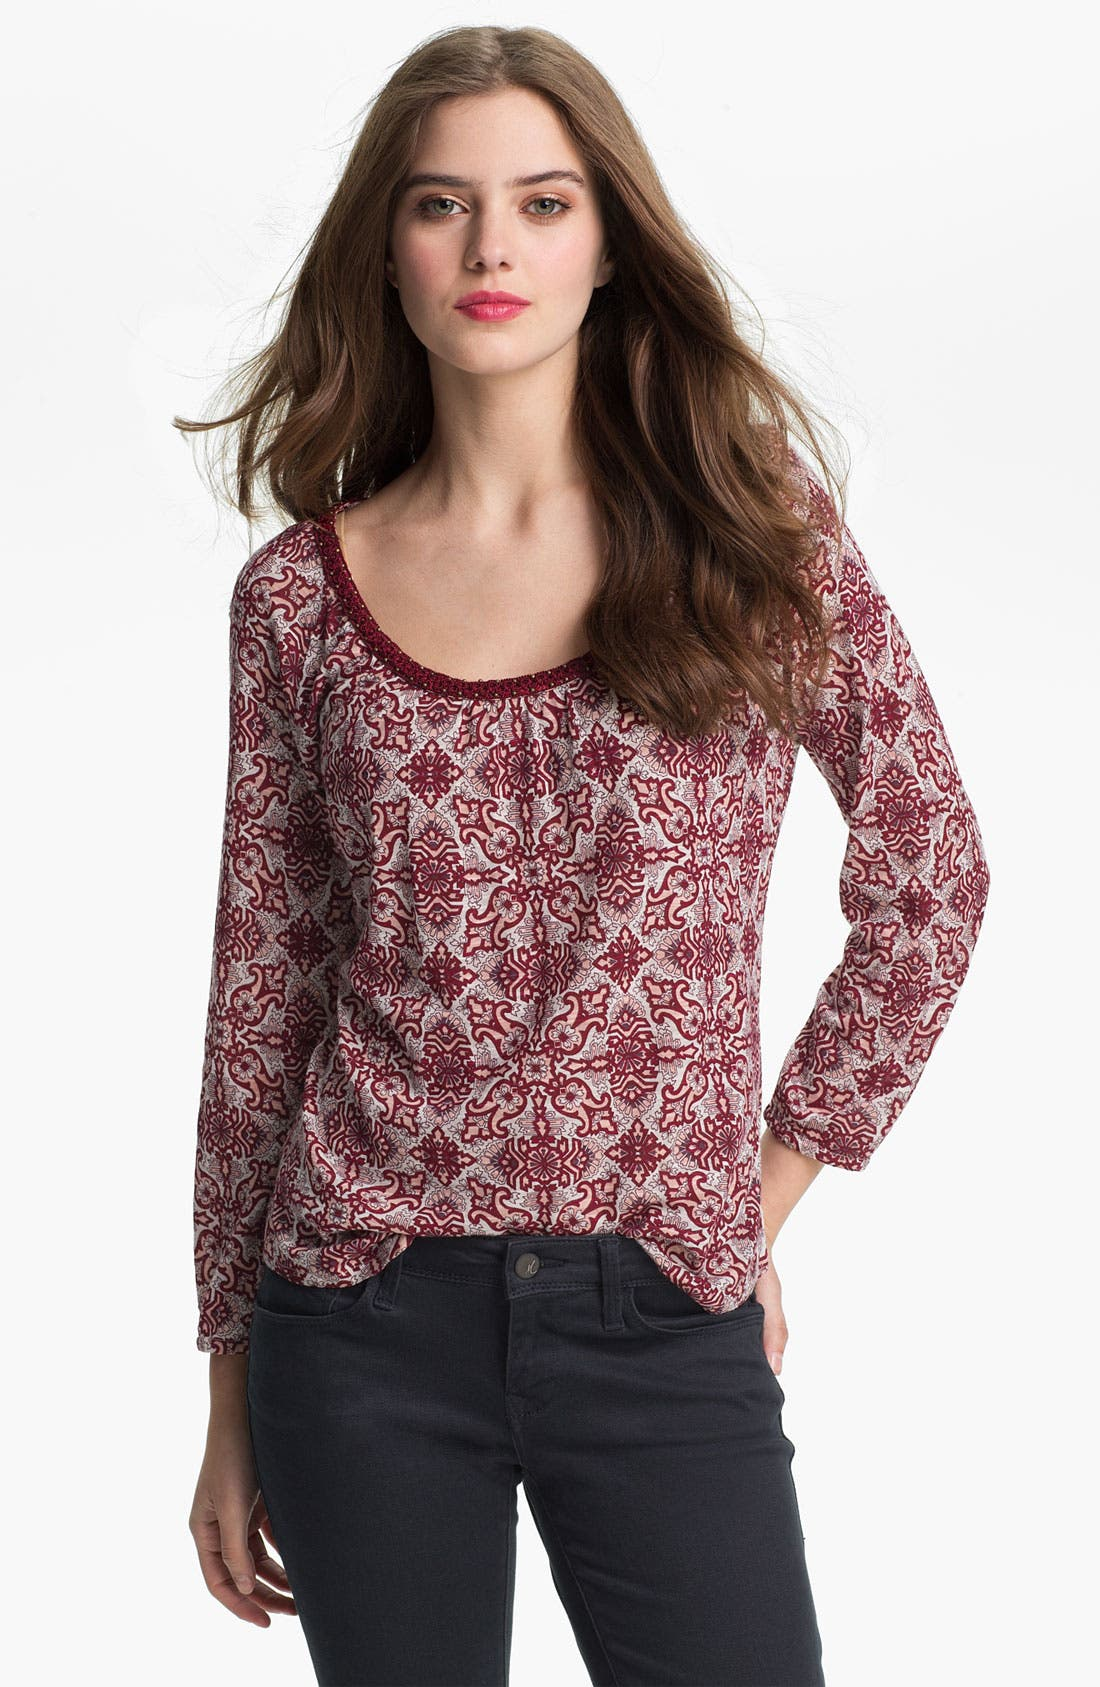 Alternate Image 1 Selected - Lucky Brand 'Ellie - Deco Woodblock' Top (Online Exclusive)